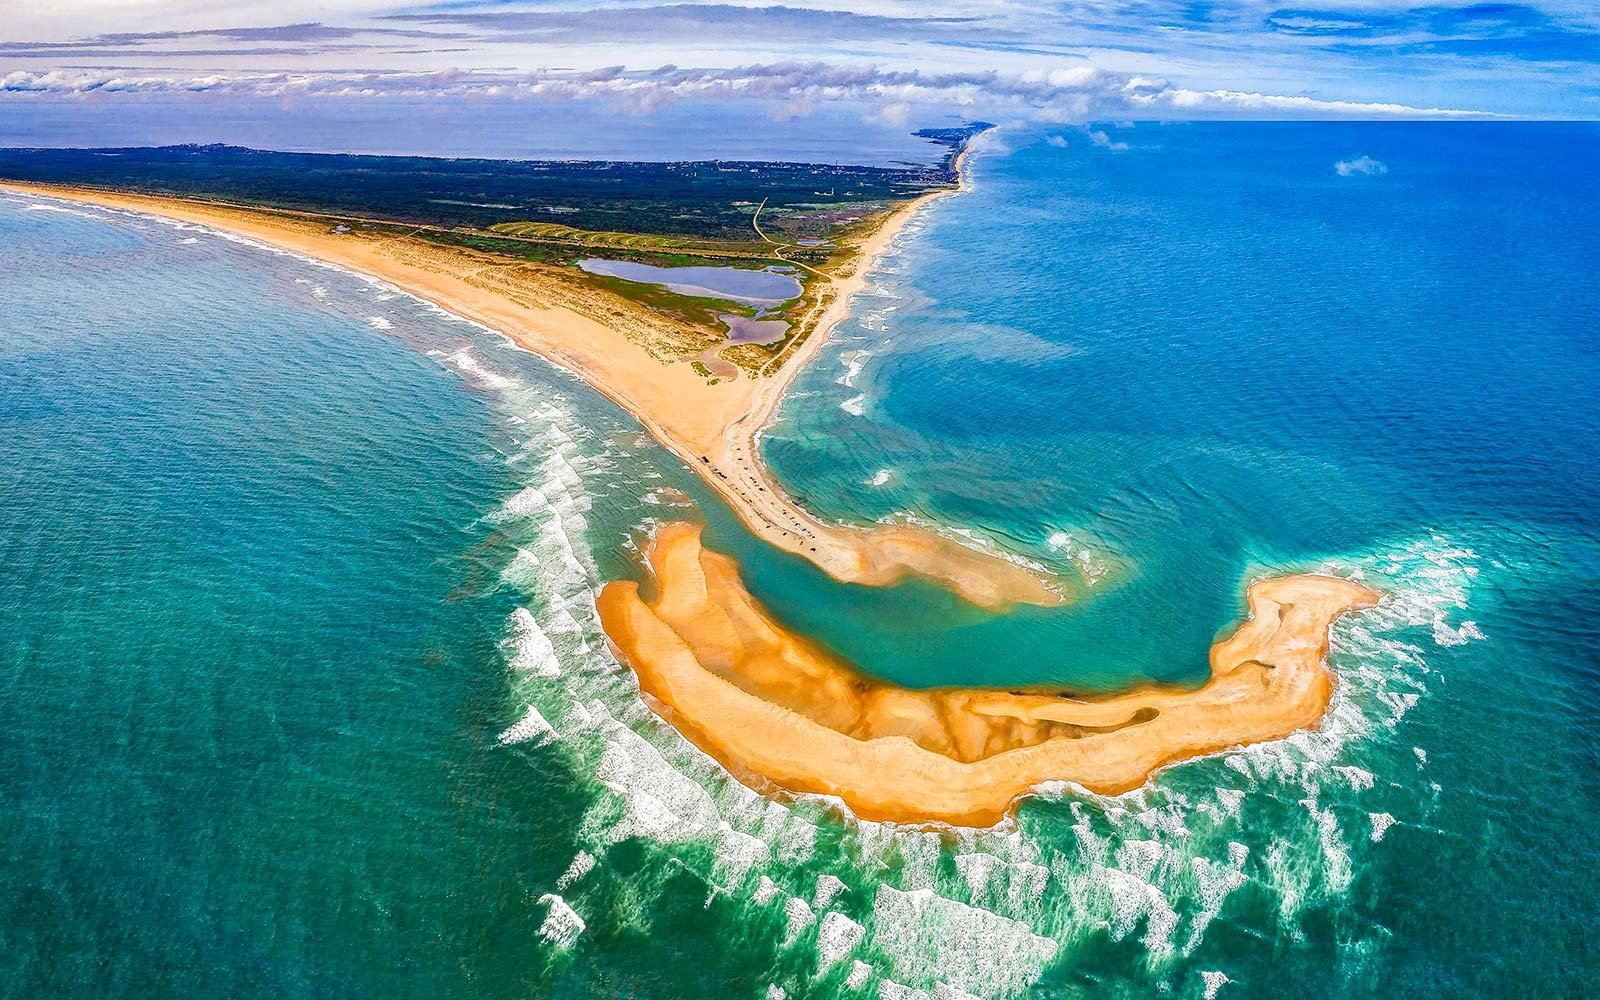 Cape Point Outer Banks North Carolina New Island aerial